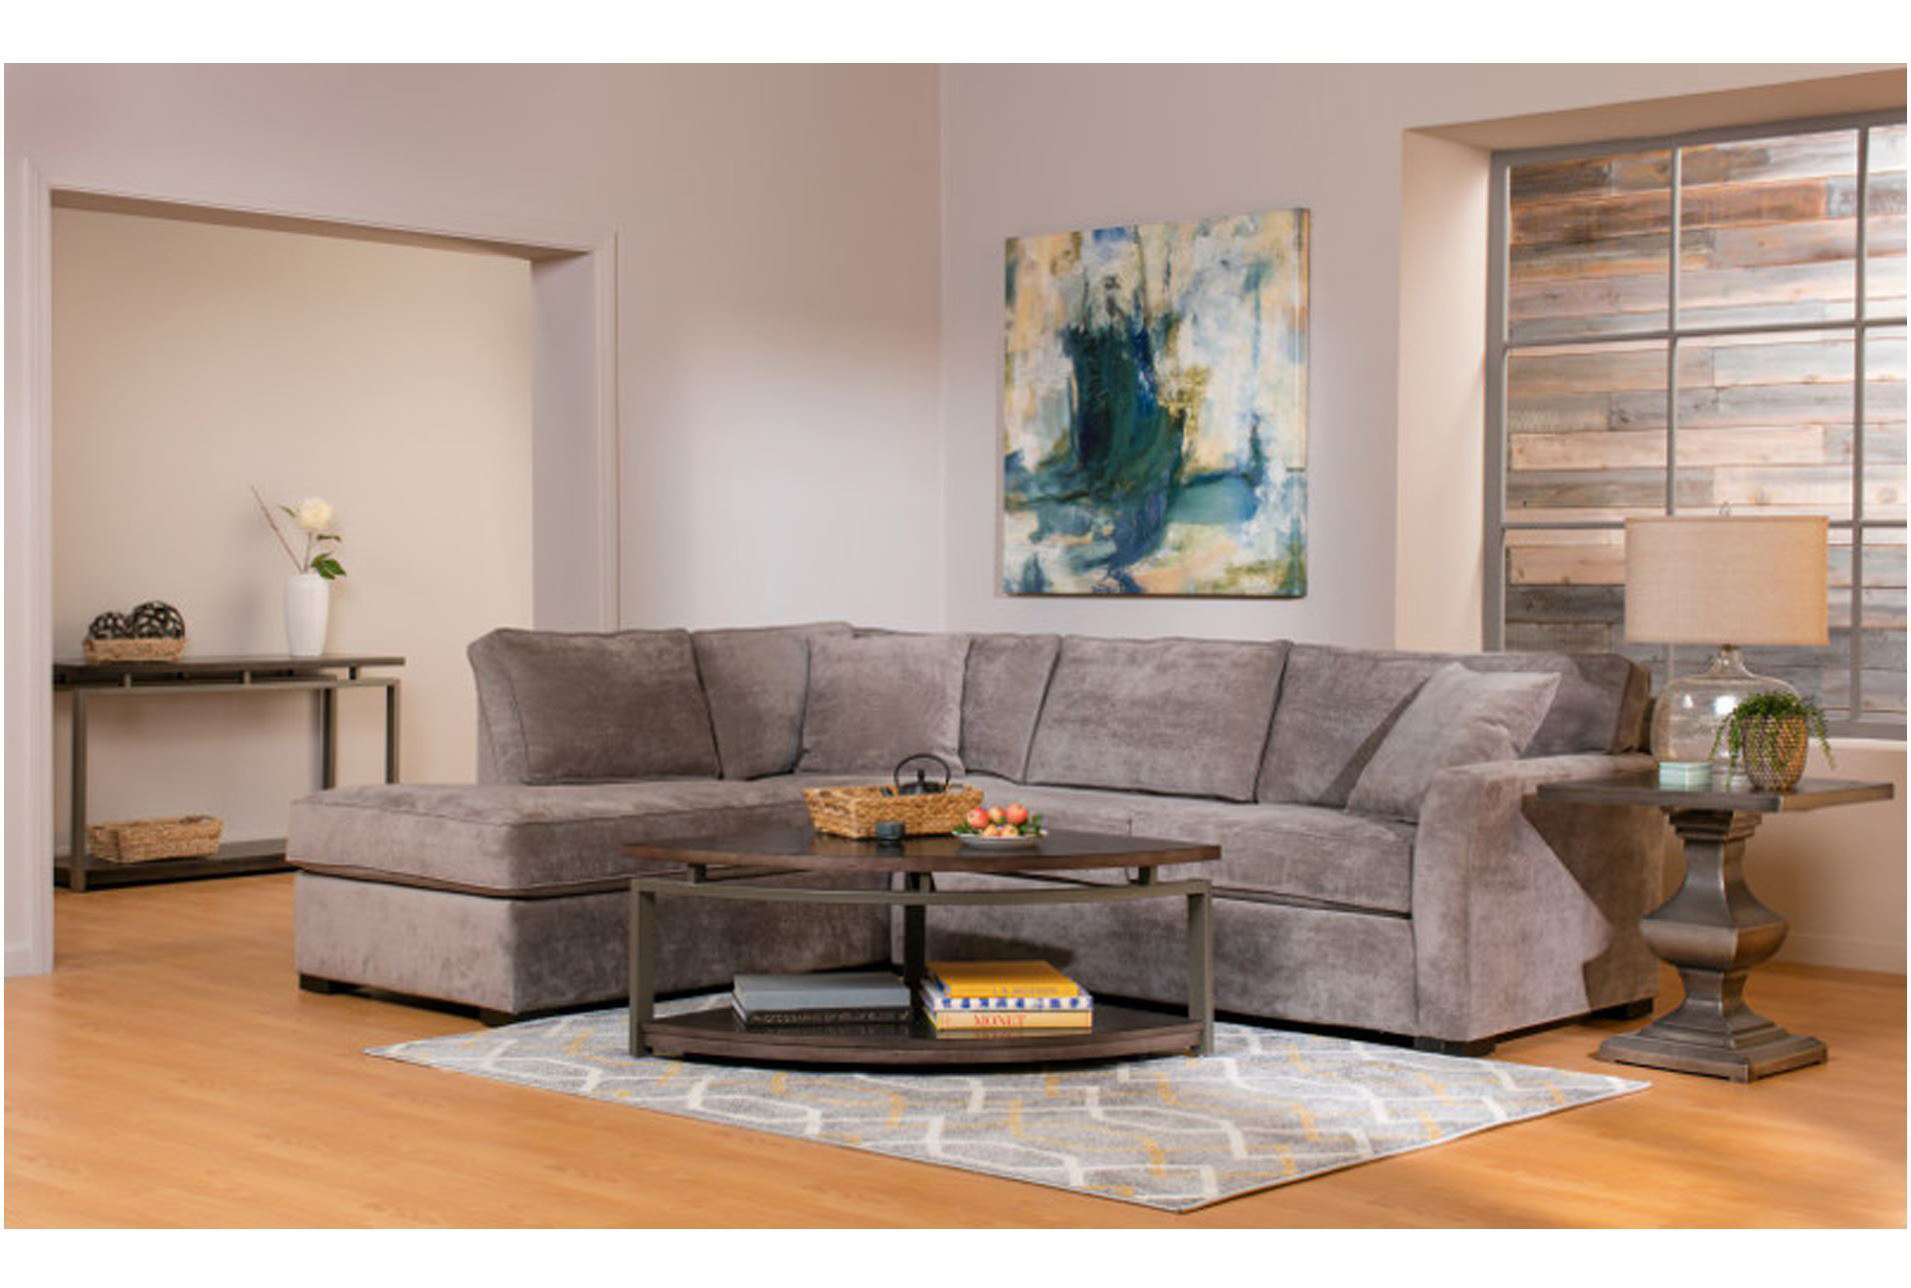 Sleeper Sectional With Preferred Aspen 2 Piece Sectionals With Laf Chaise (View 4 of 20)